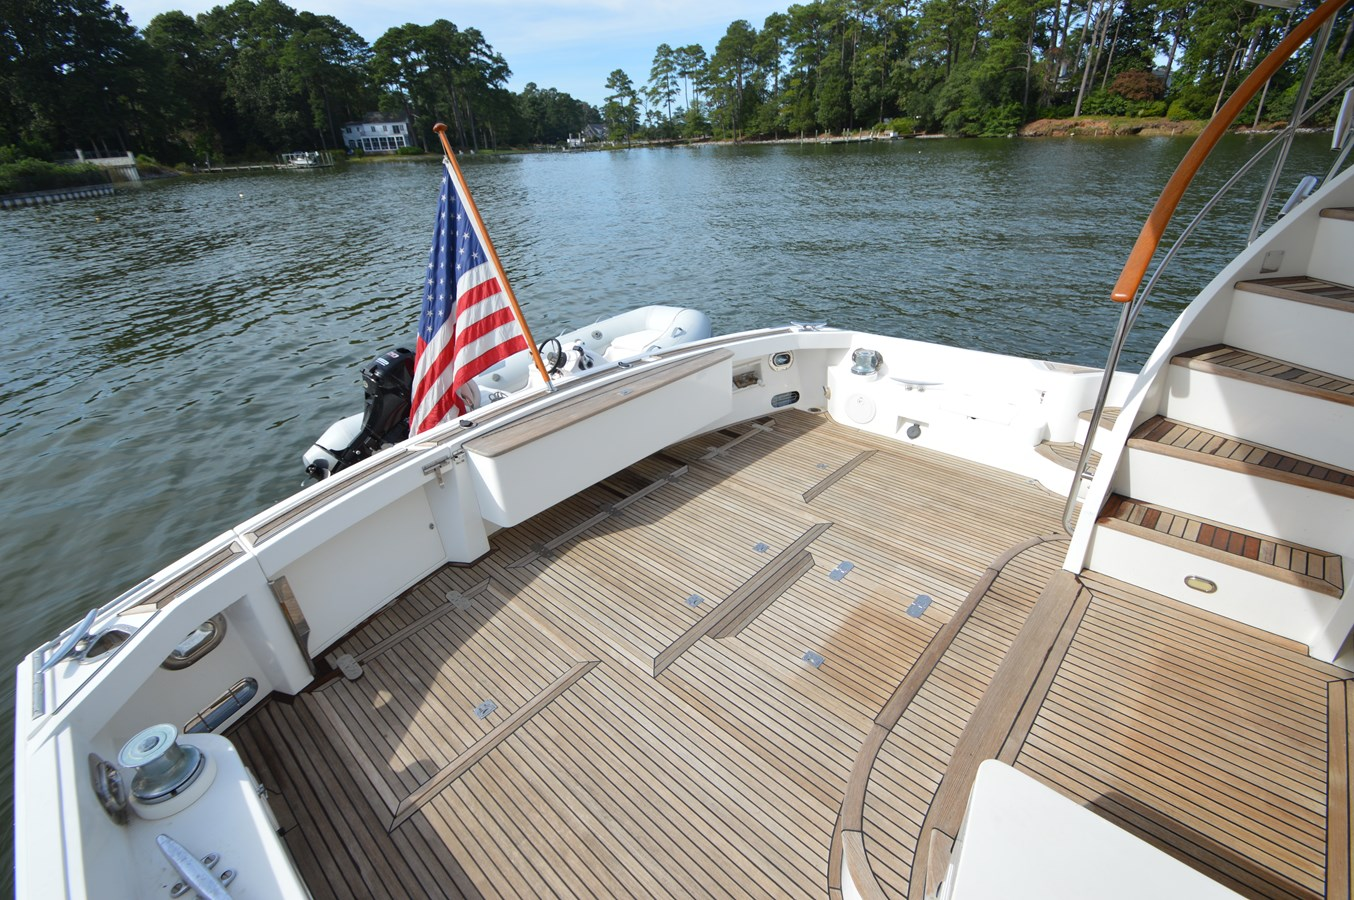 28 - 58 GRAND BANKS For Sale